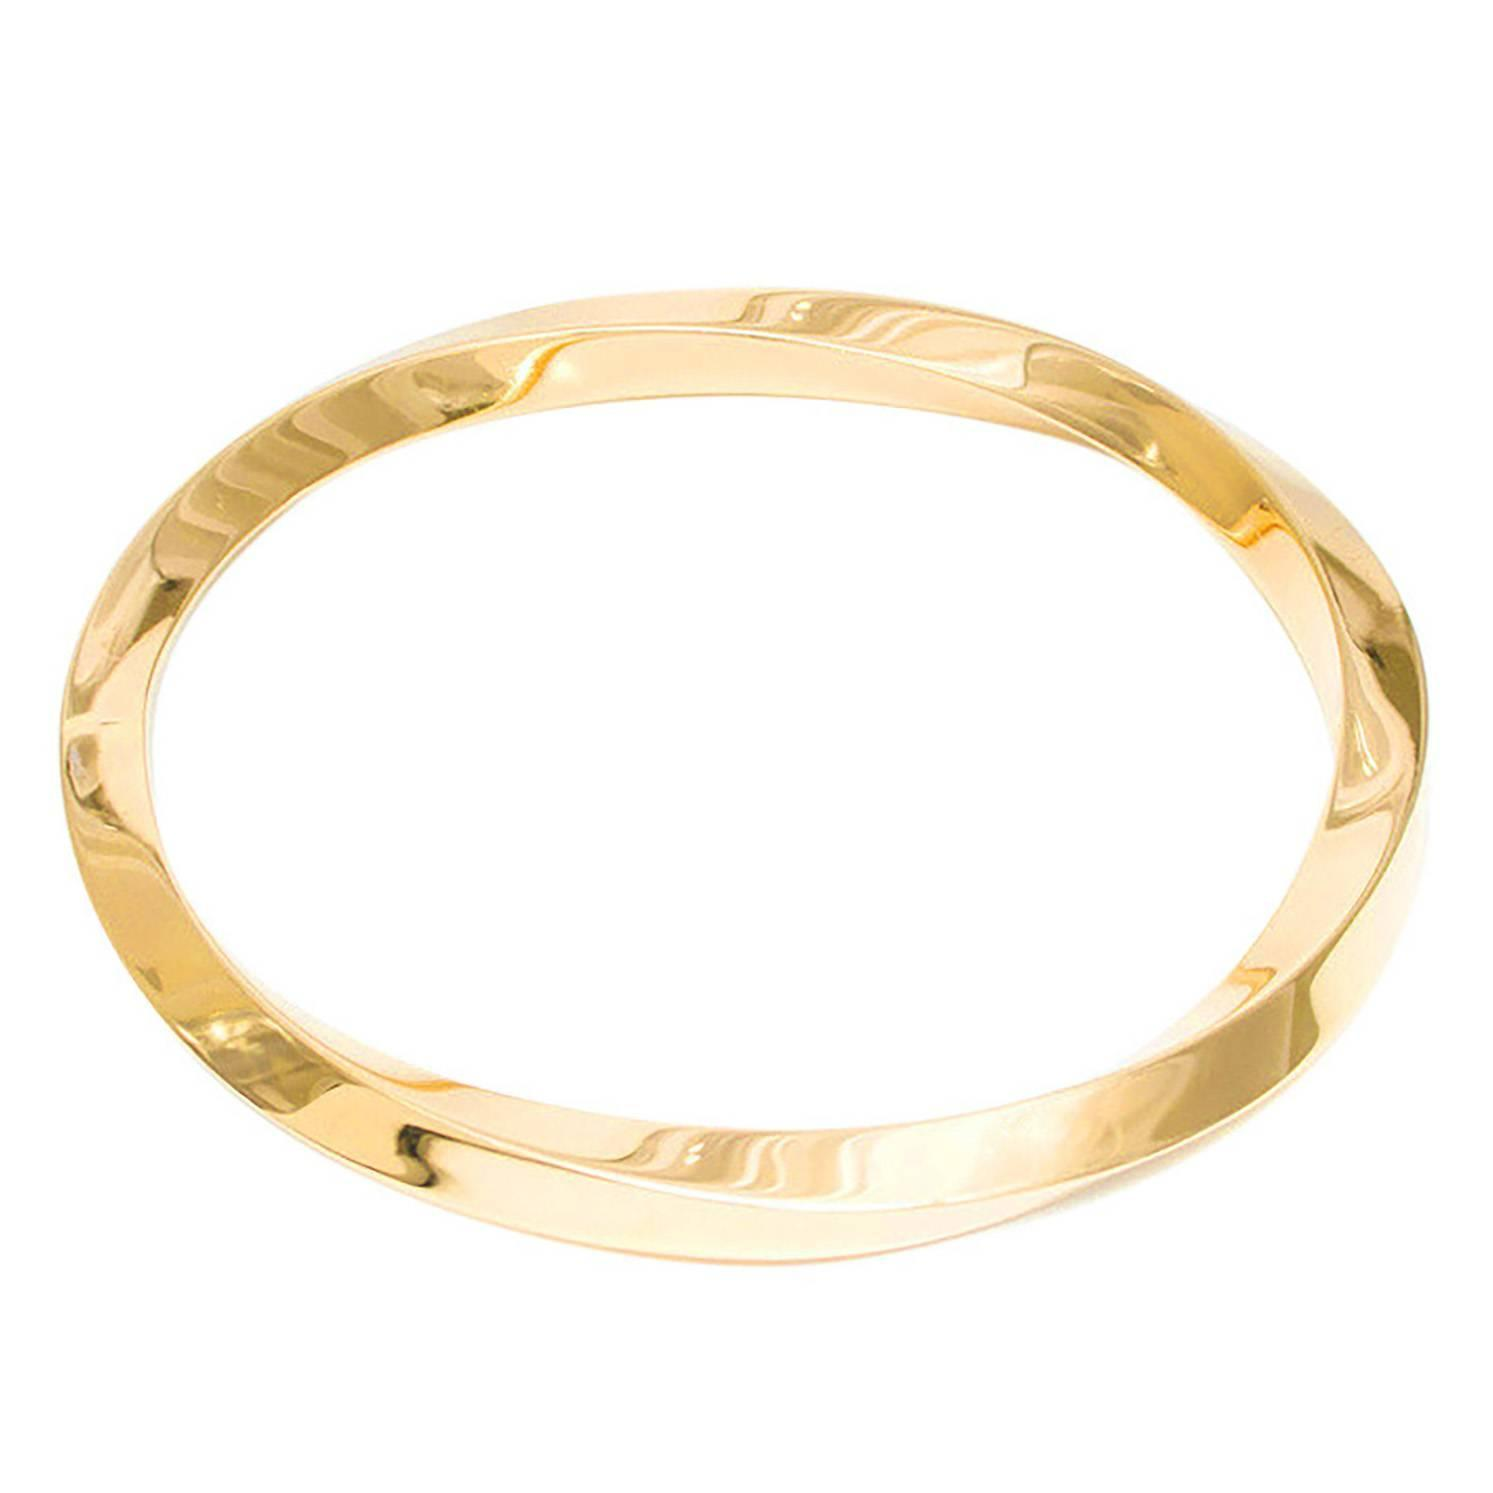 p bangle asp dipped stunning in solid silver bangles bracelets grams bracelet mens gold sterling spanner men s